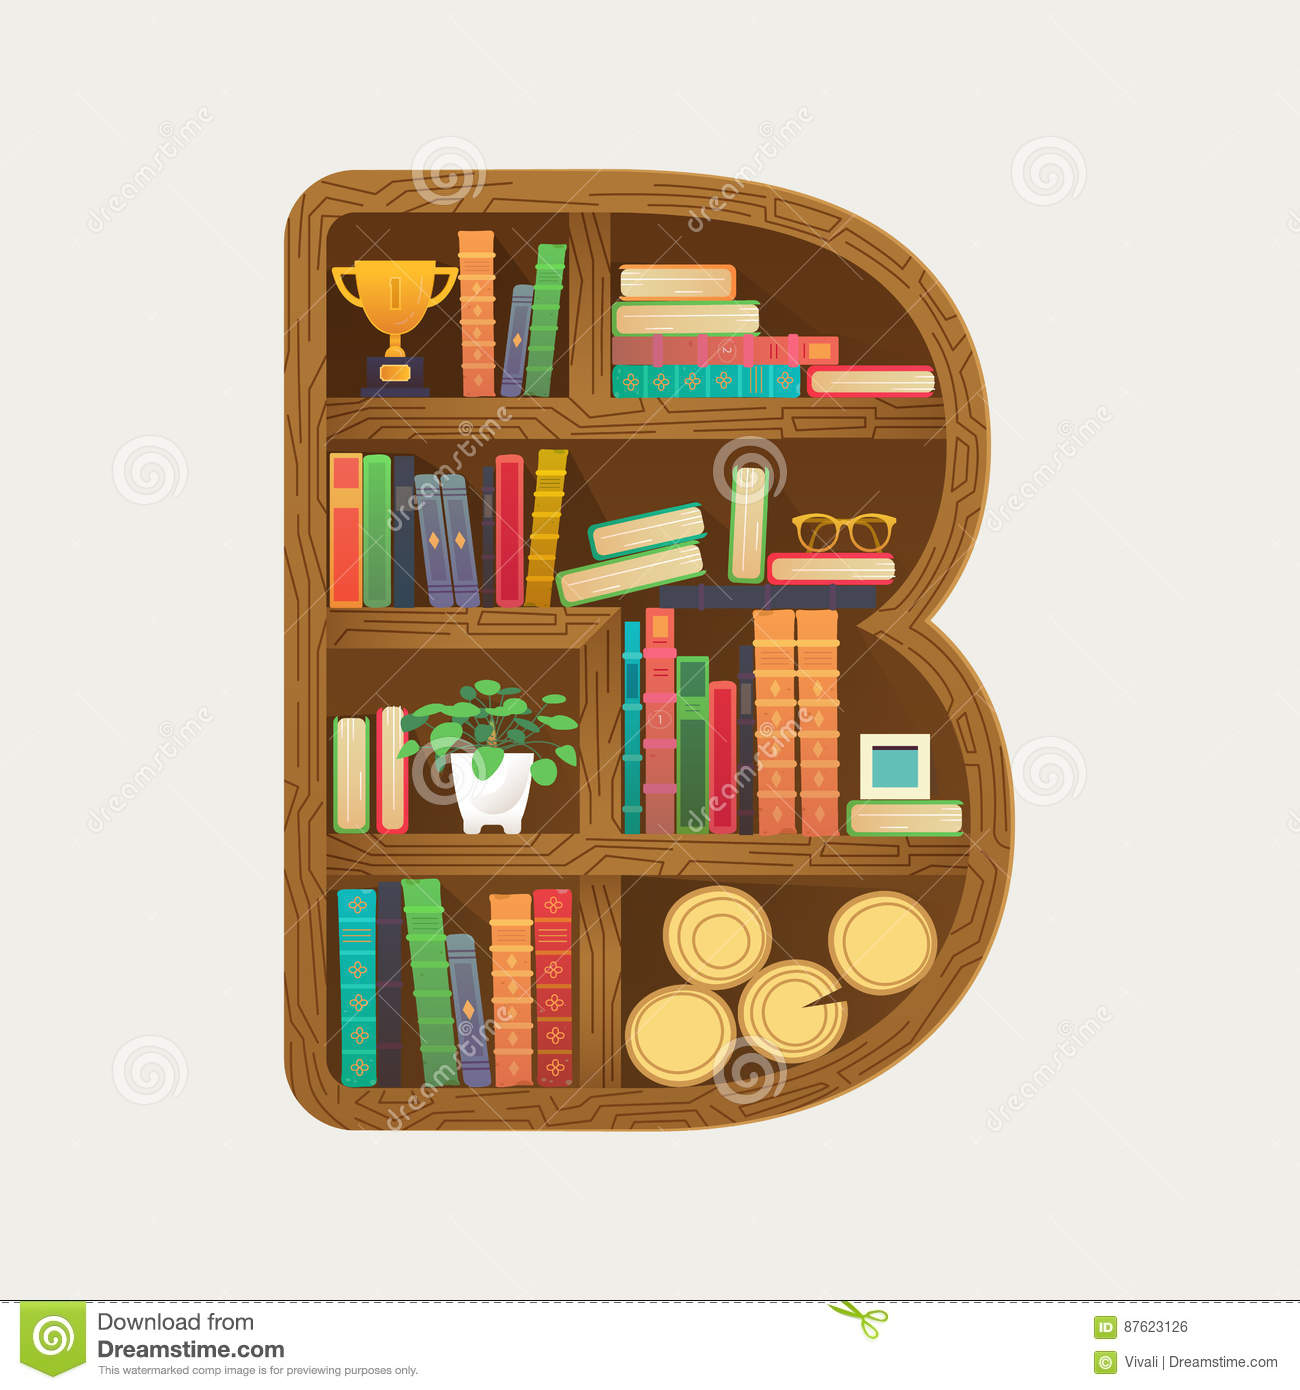 Bookshelf Print With Colorful Books And Home Everyday Things